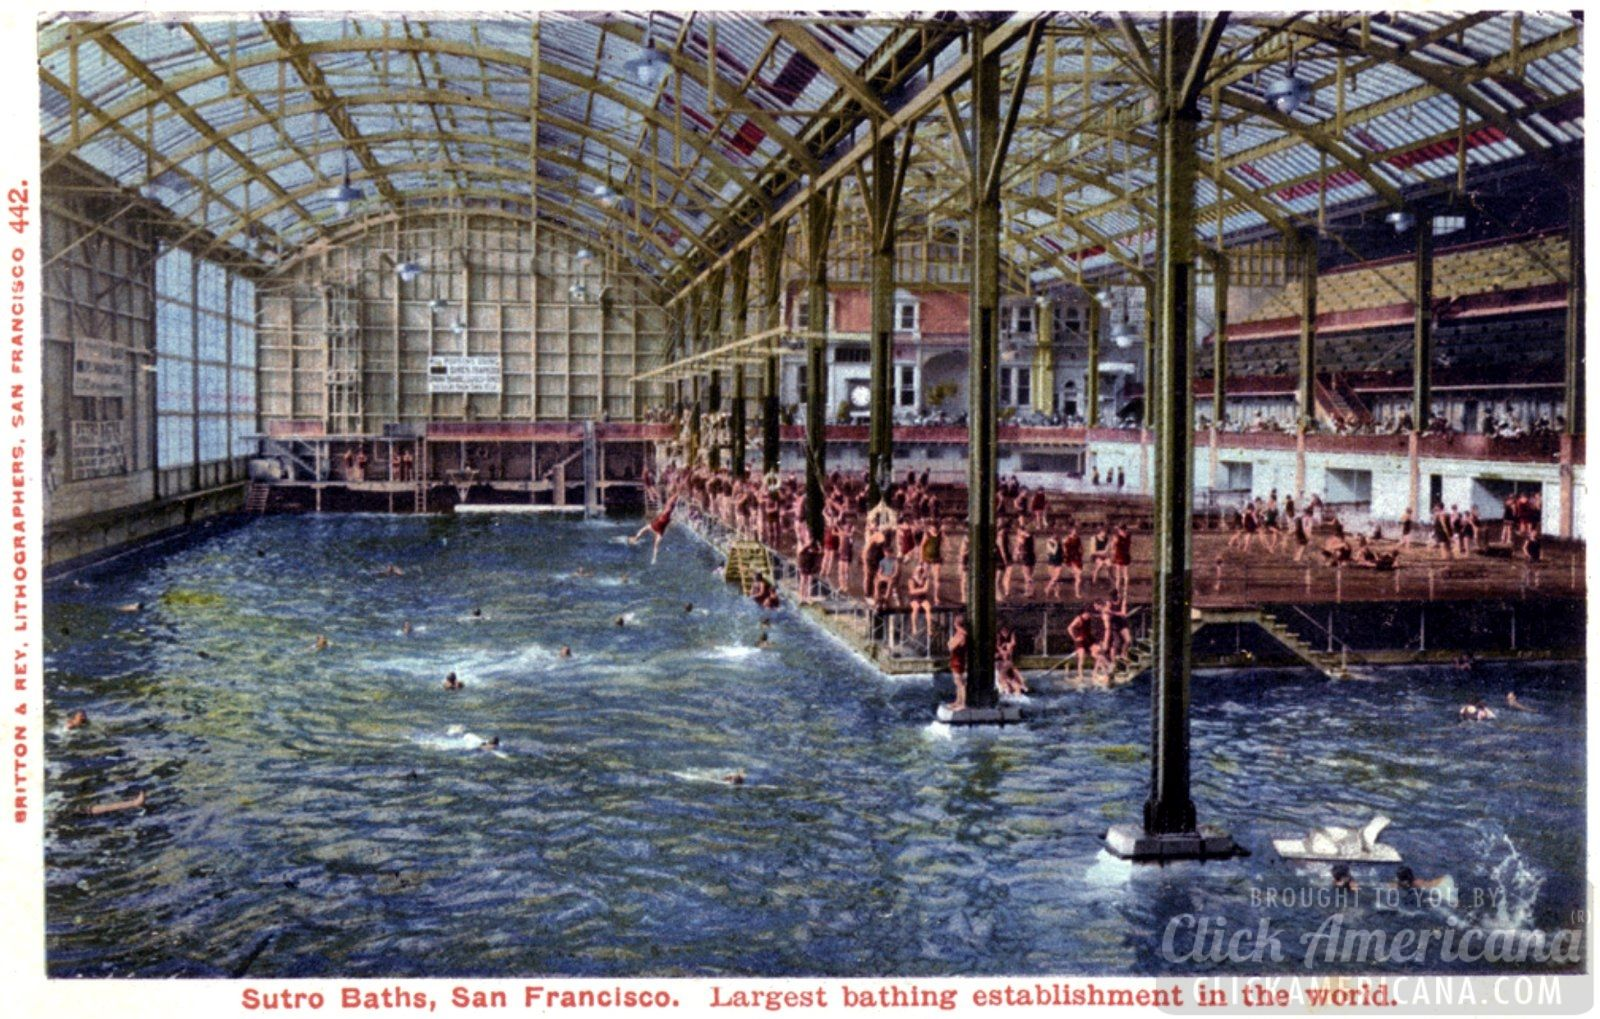 San Francisco S Victorian Marvel The Huge Swimming Pools At Sutro Baths Indoor Swimming Pools Swimming Pool Images Swimming Pool Pictures